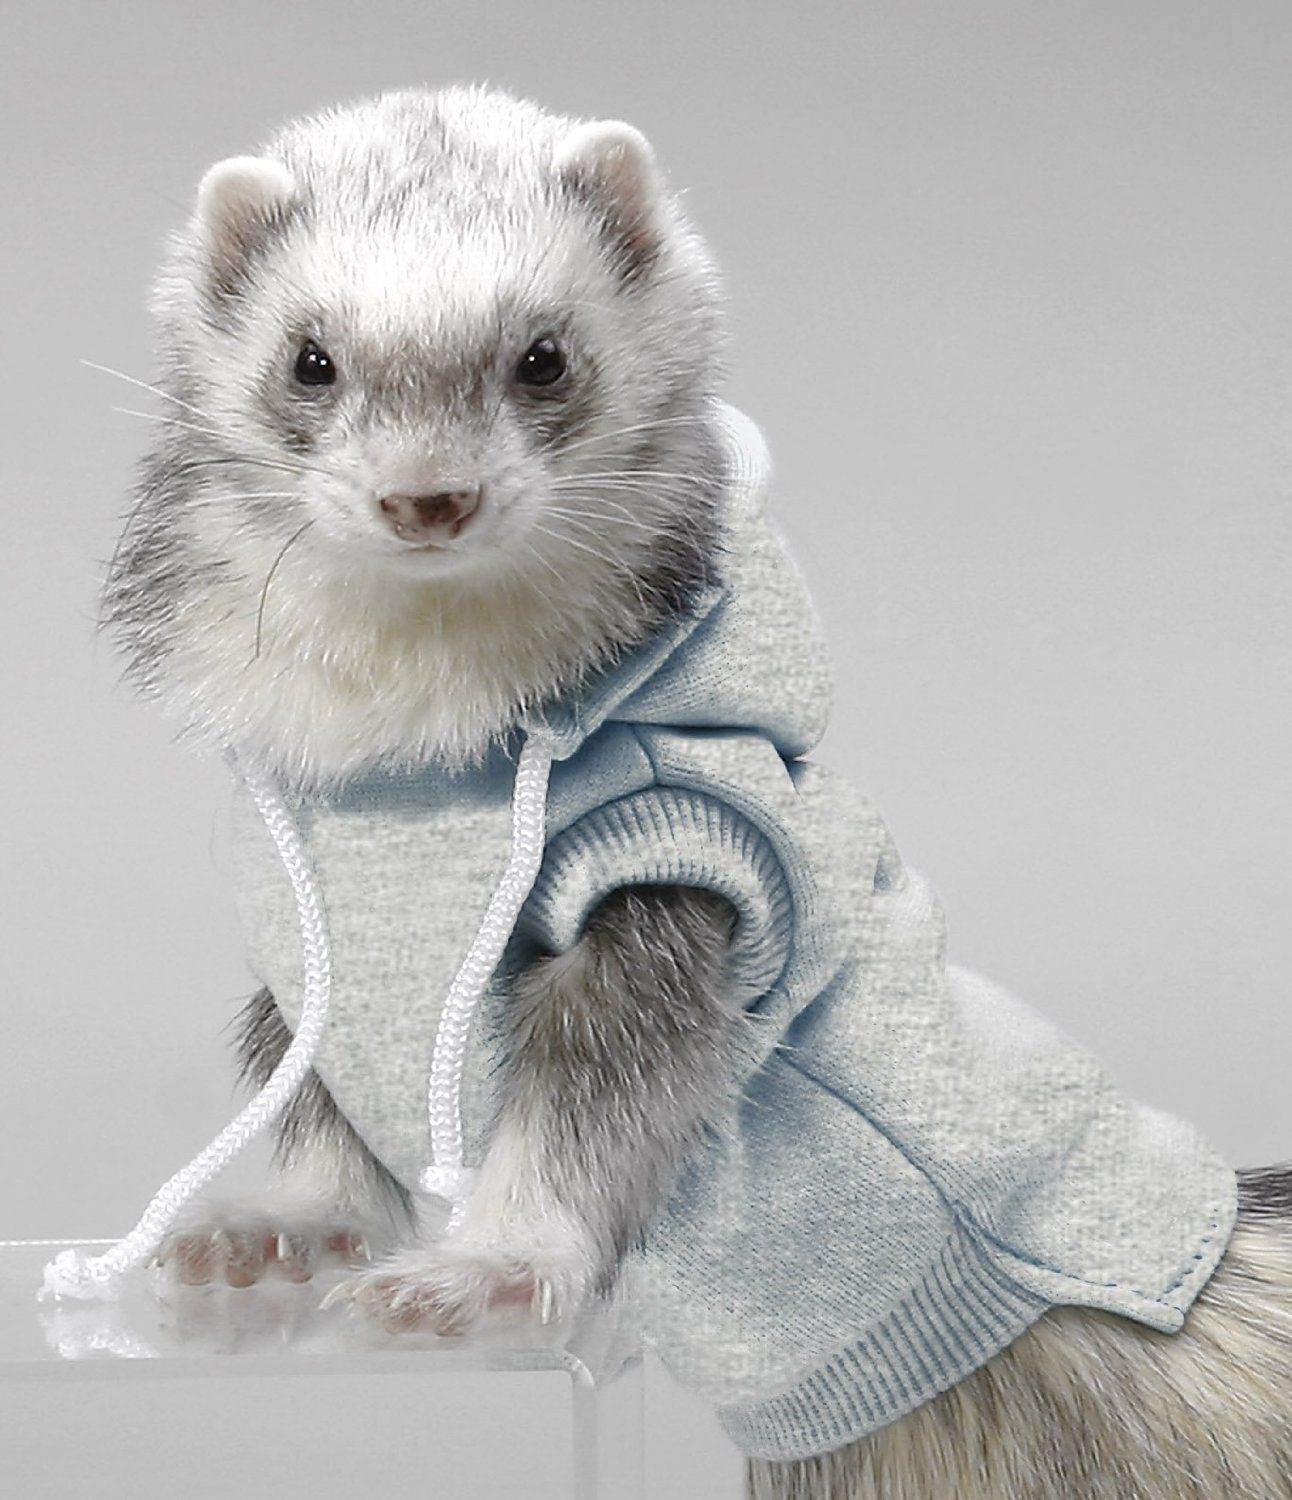 Marshall Ferret Sweatshirt Pet Ferret Cute Ferrets Funny Ferrets